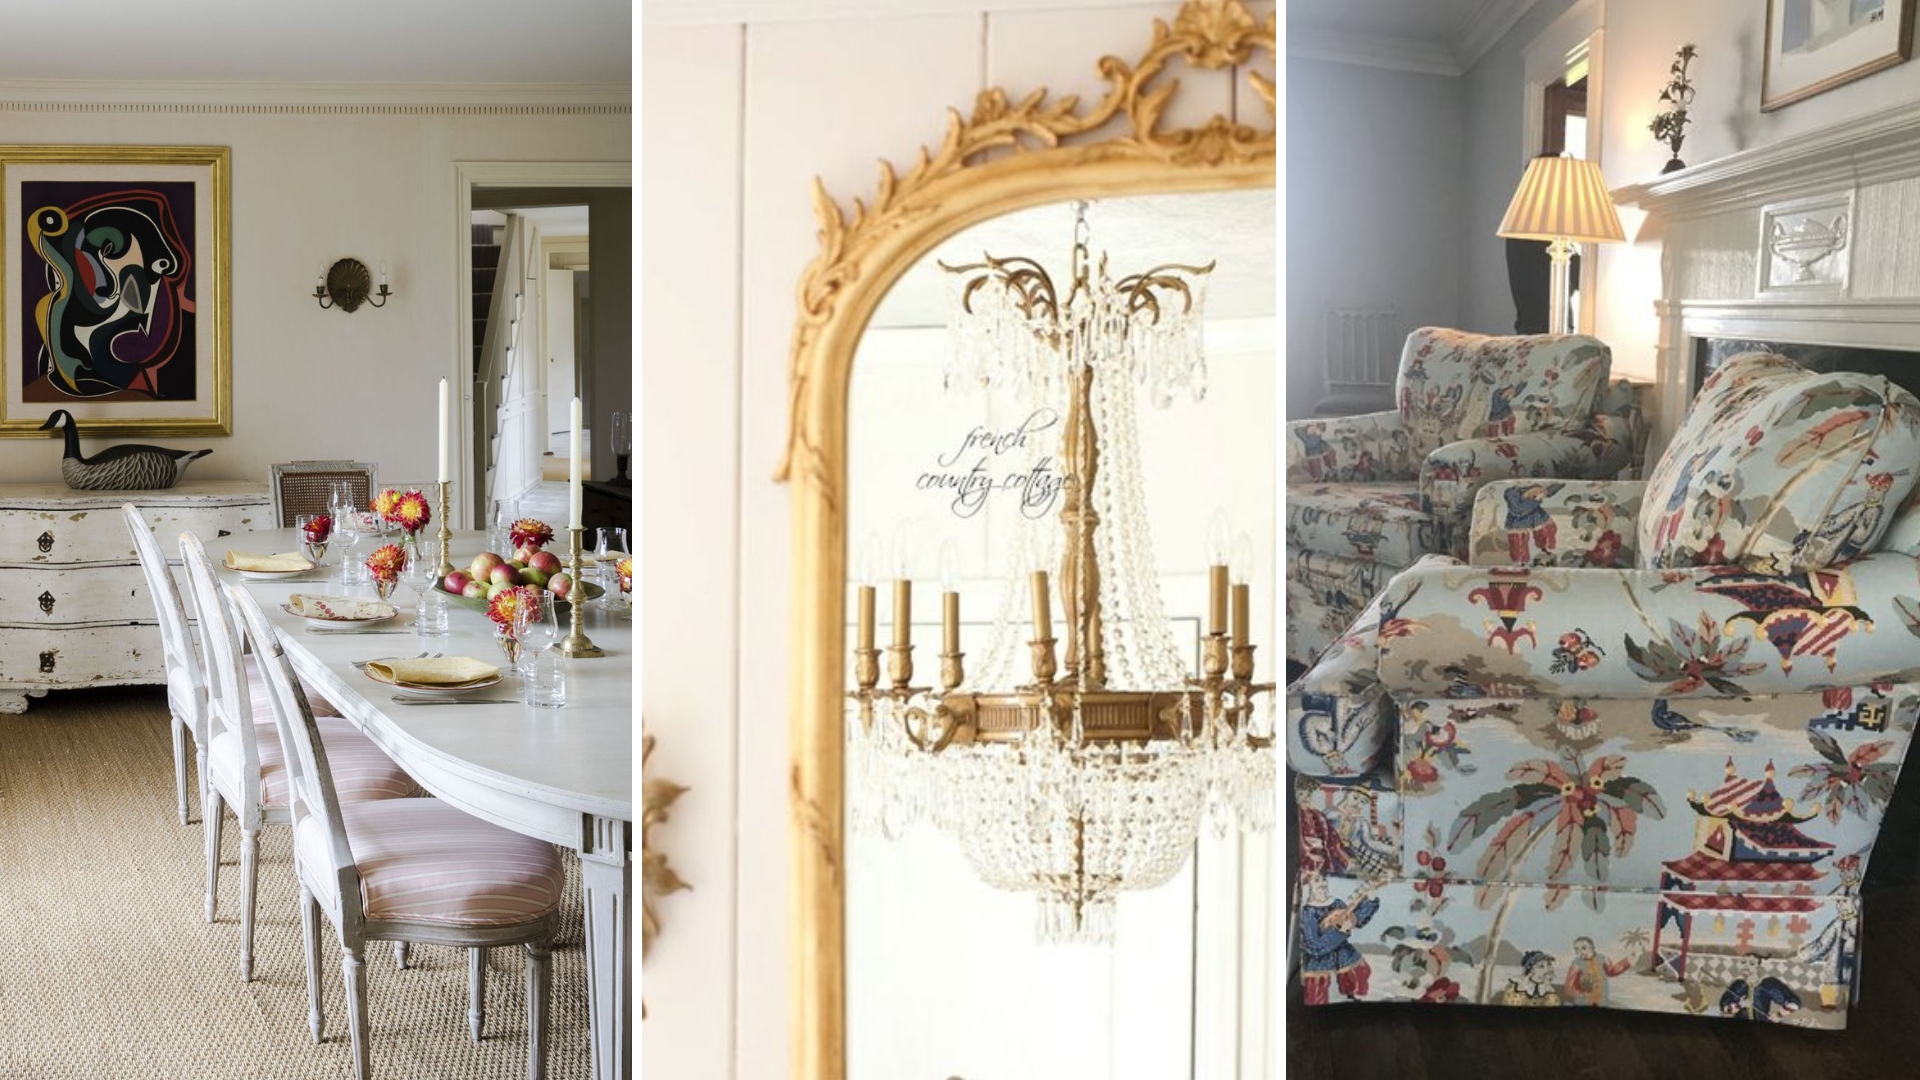 French Country Home Decor Ideas For Classic Style House Simphome,Bedroom Ideas With White Washed Furniture